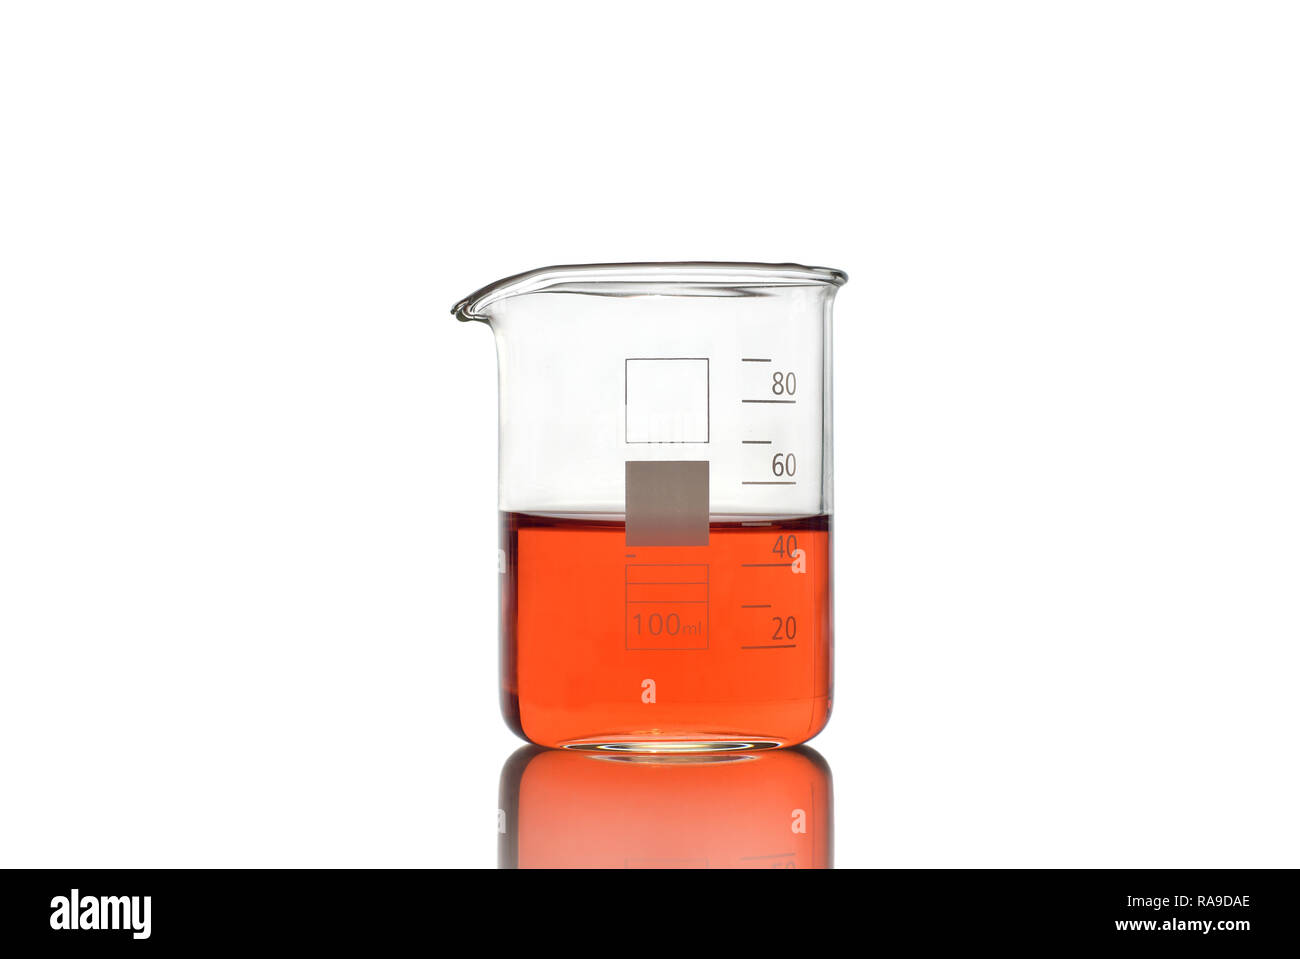 Beaker with red liquid on white background - Stock Image